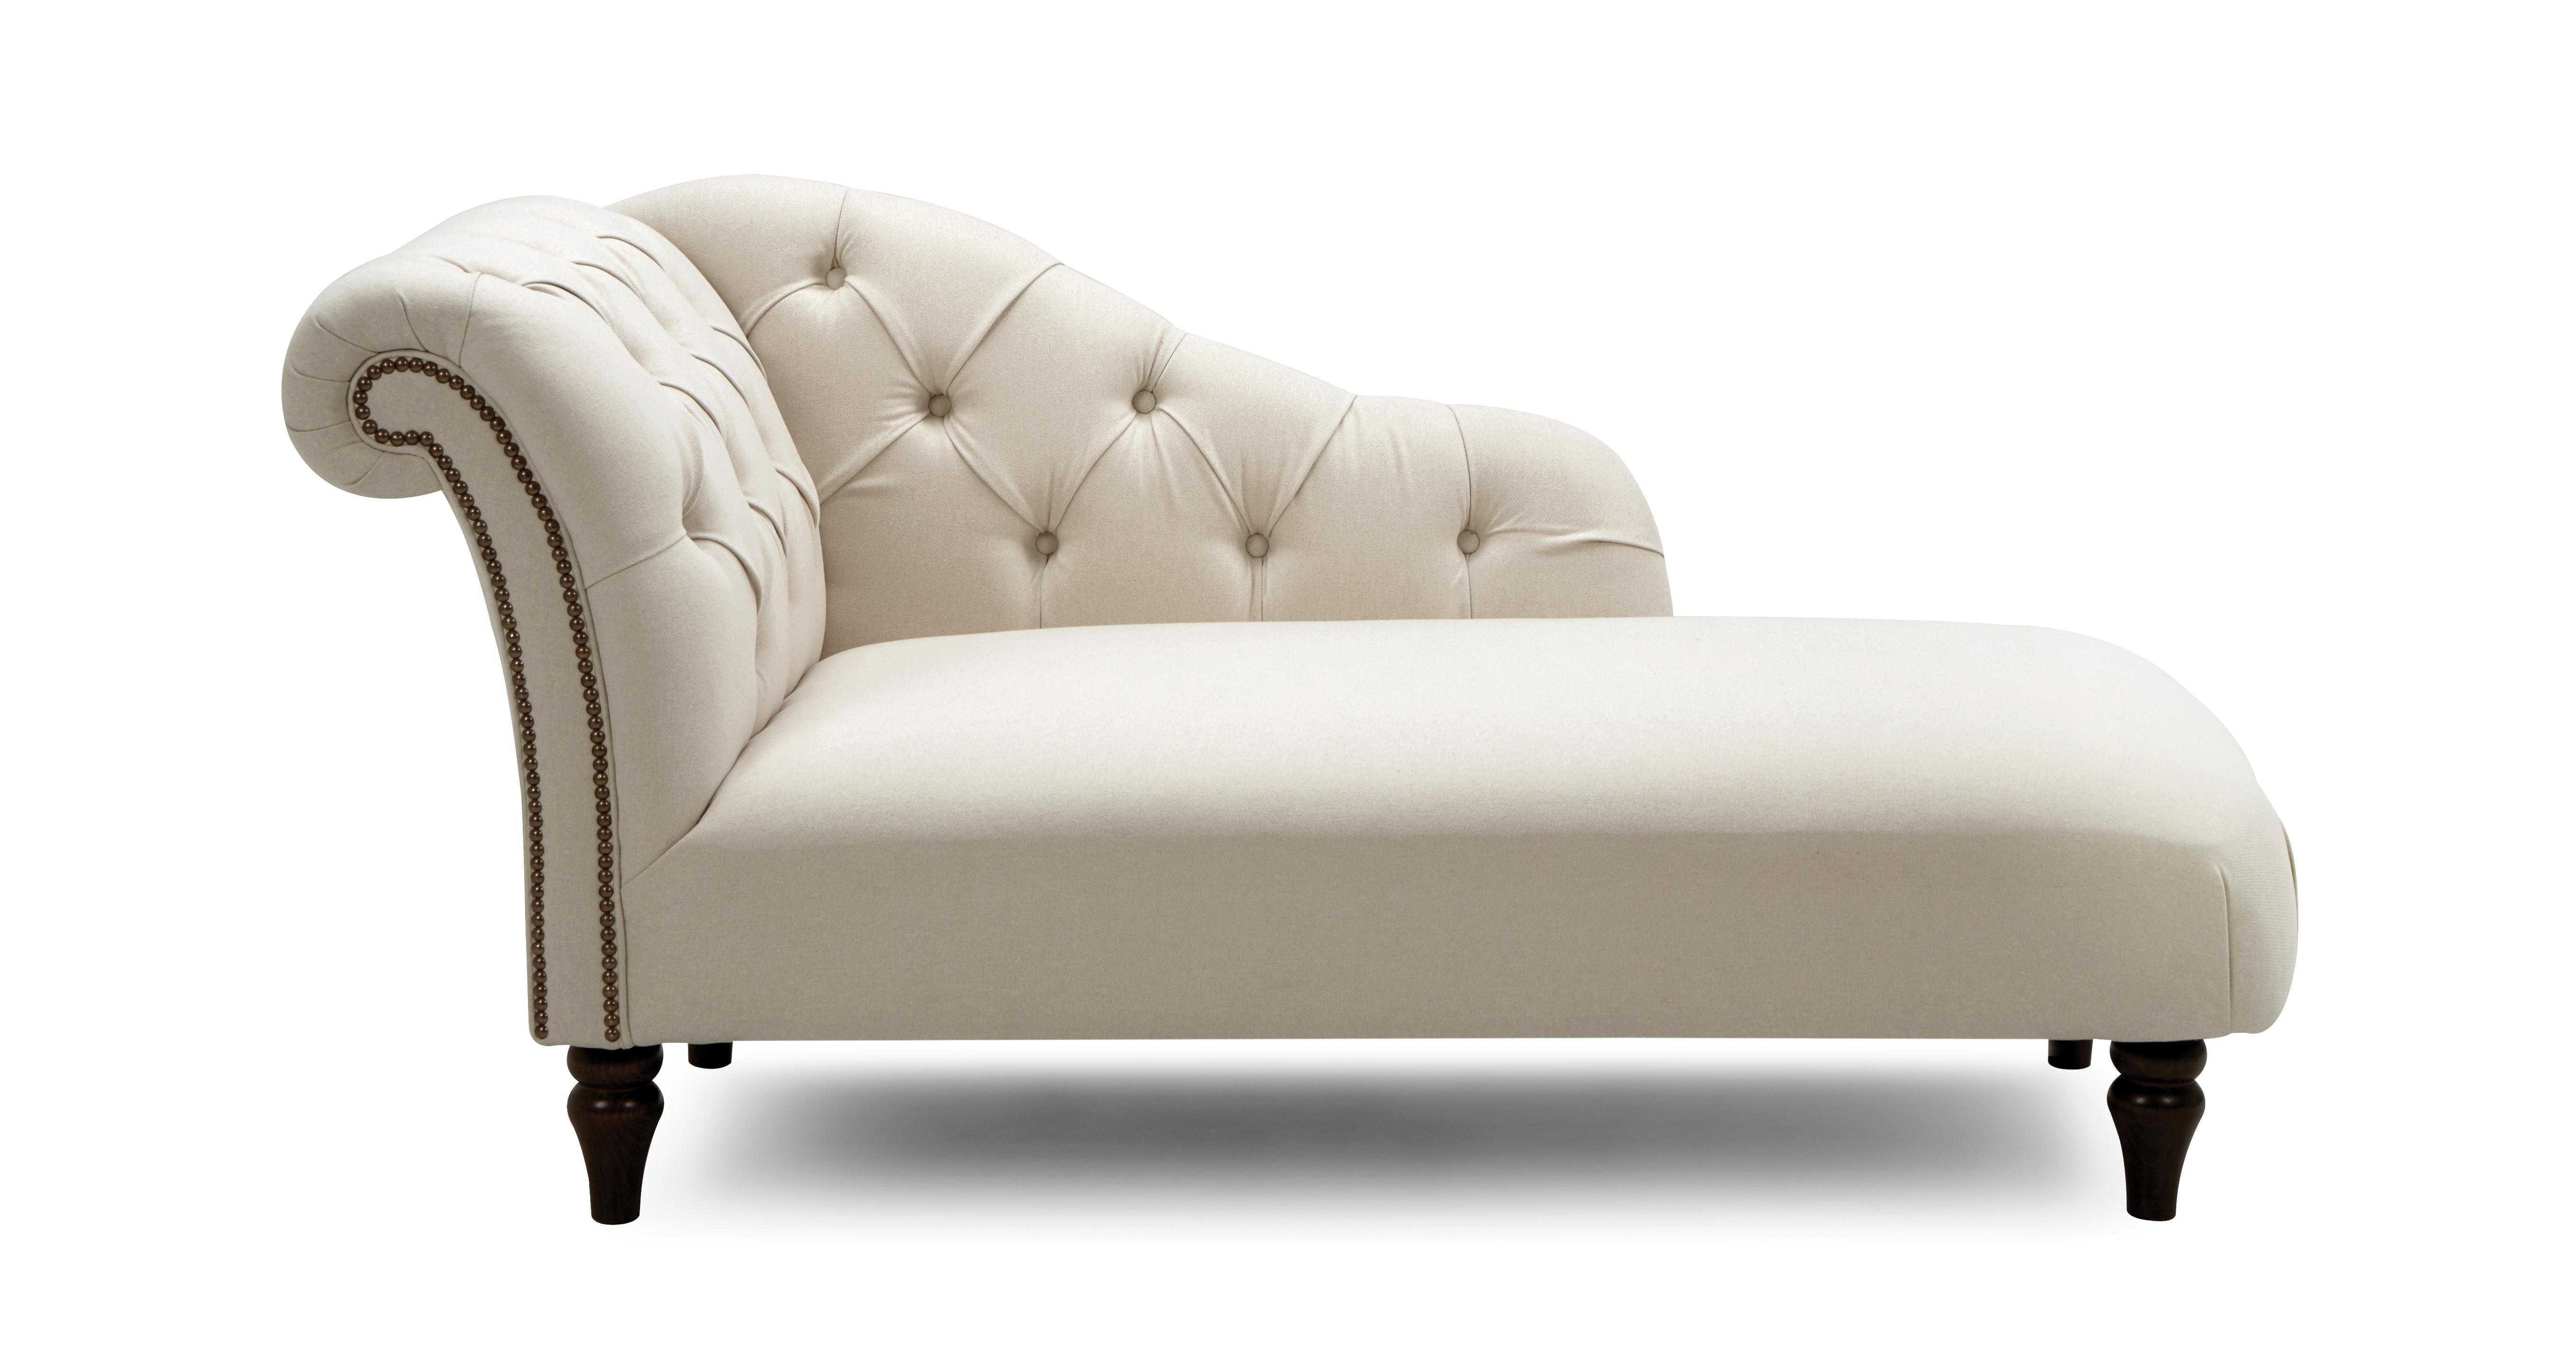 bedroom chair dfs desk trendy chairs in modern traditional styles cambourne chaise longue country living